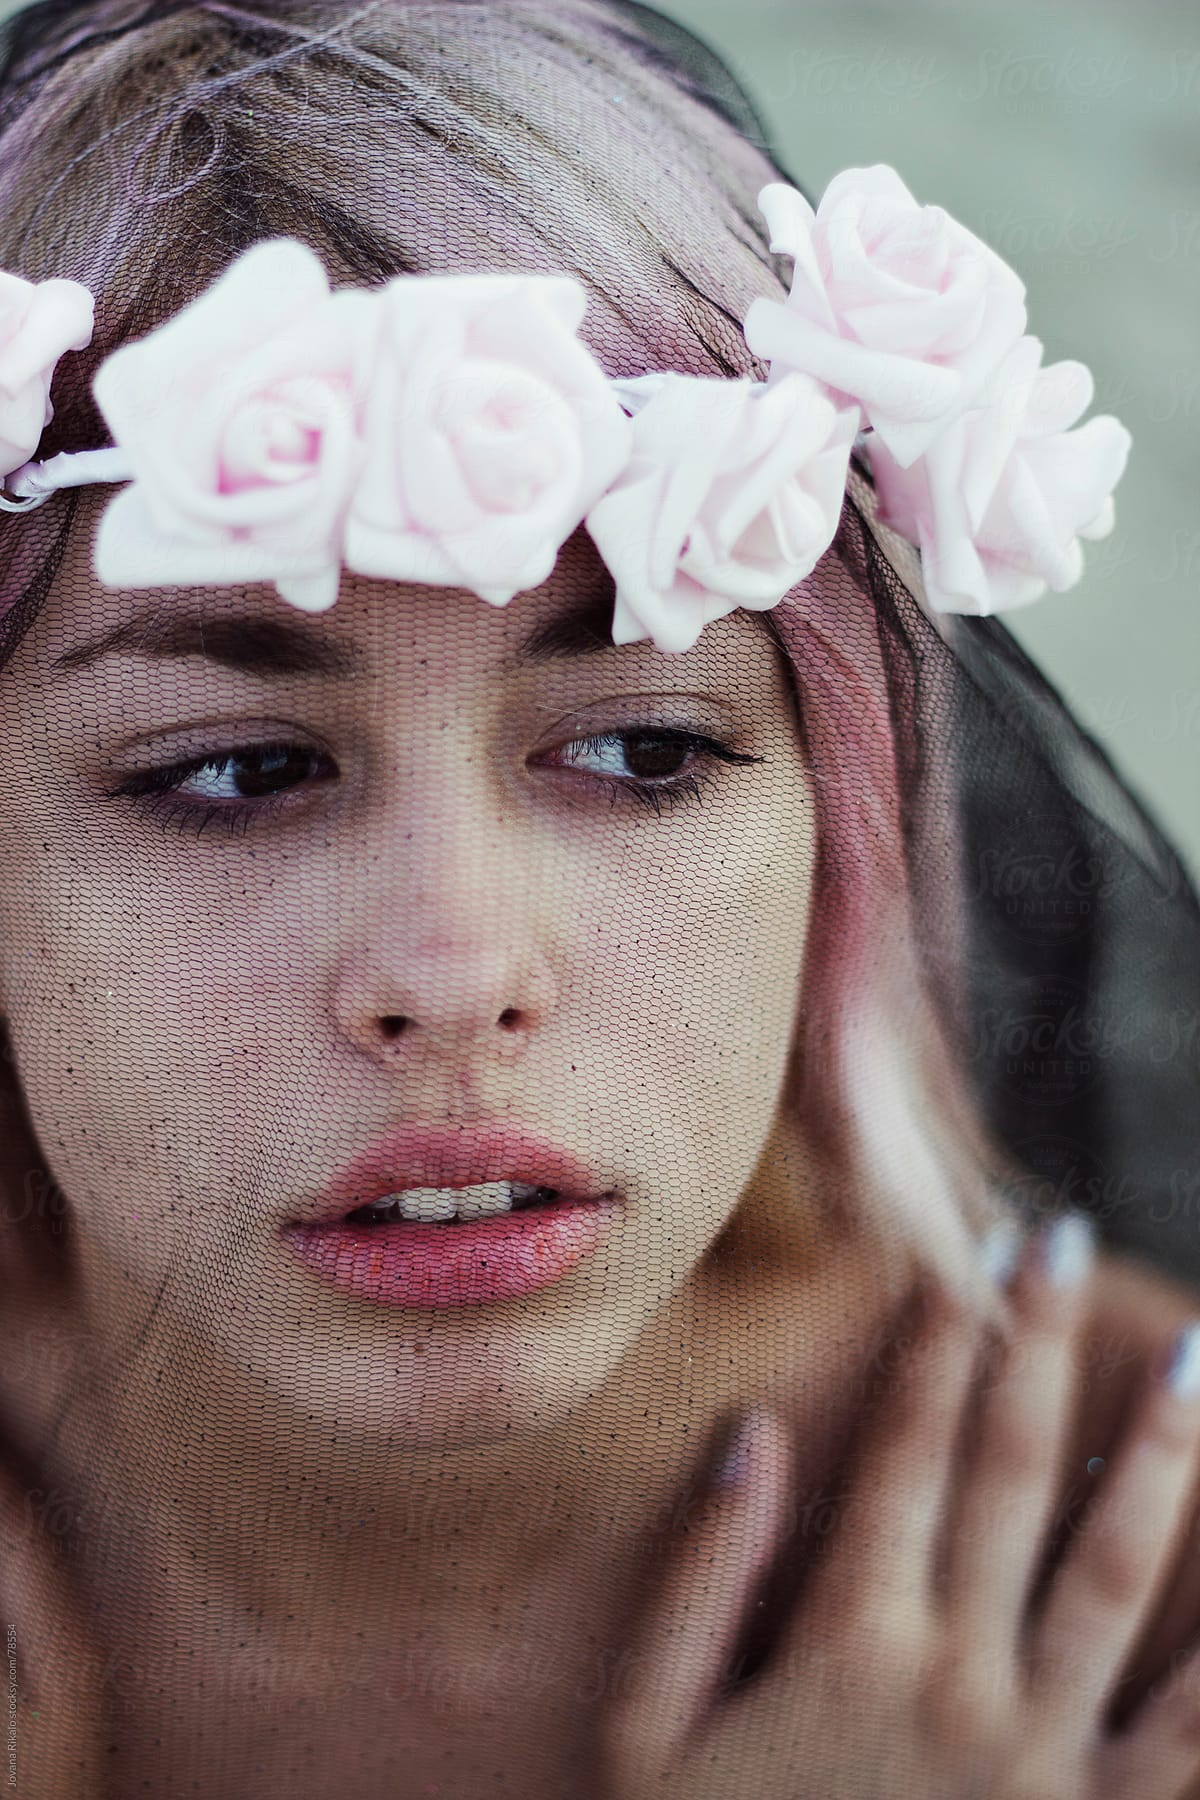 Beautiful girl with flower wreath on her head stocksy united beautiful girl with flower wreath on her head by jovana rikalo for stocksy united izmirmasajfo